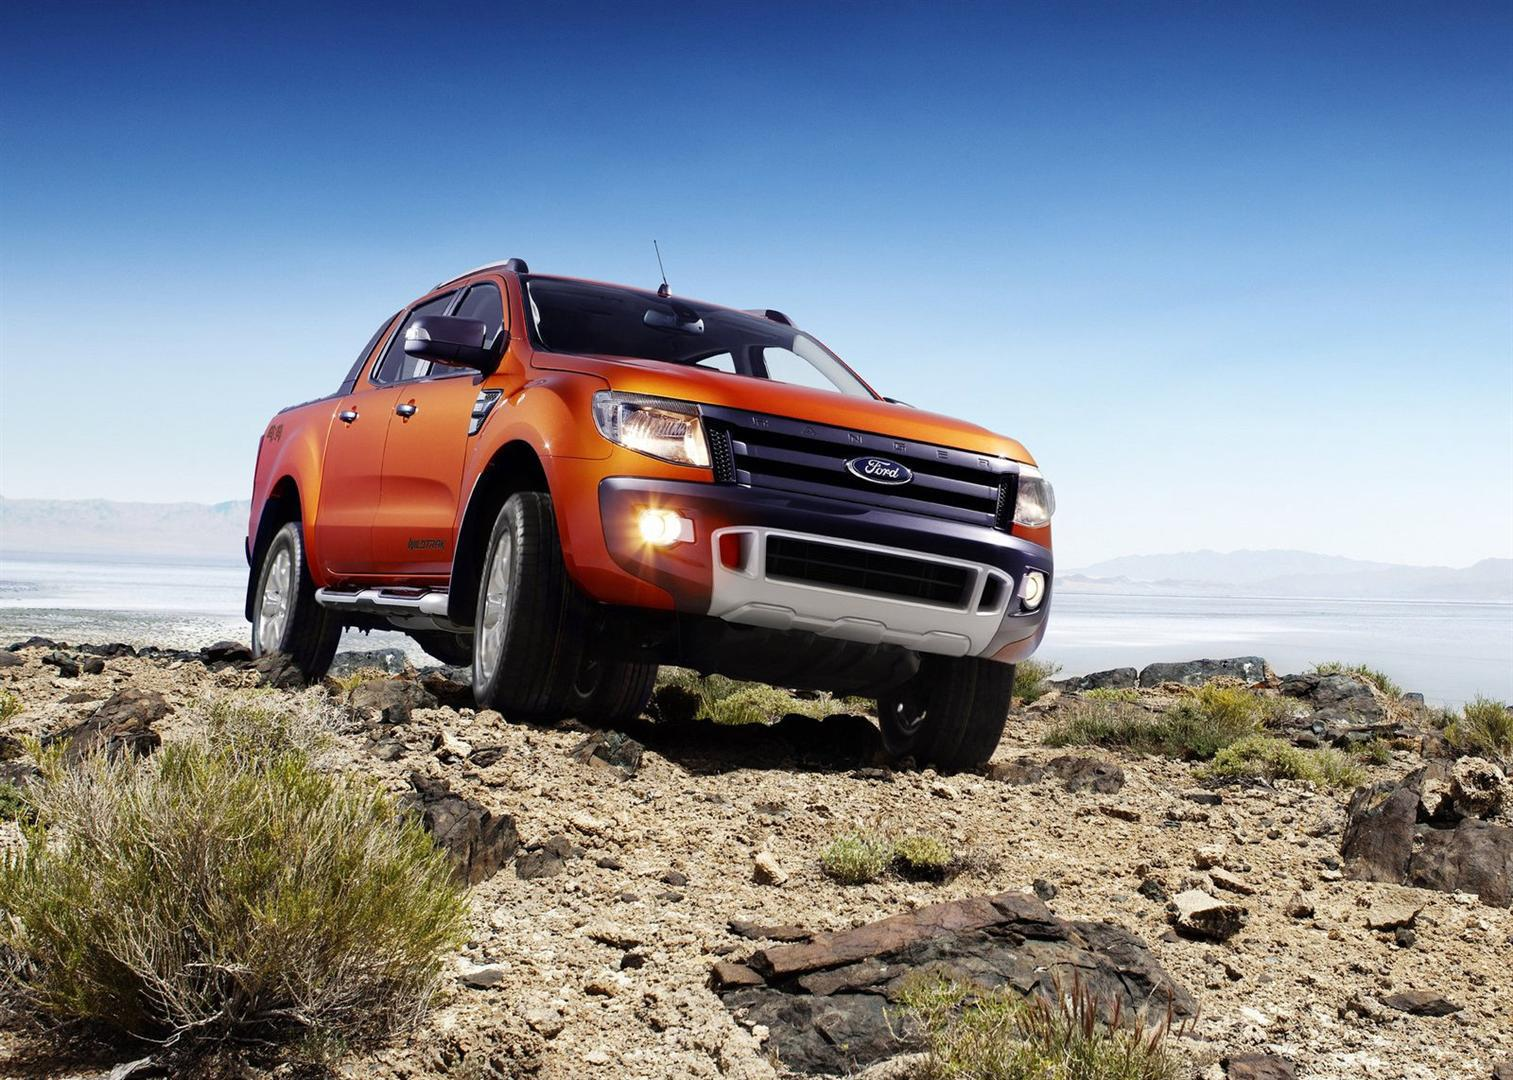 2018 Ford Ranger Fx4 Malaysia - Ausi SUV Truck 4WD